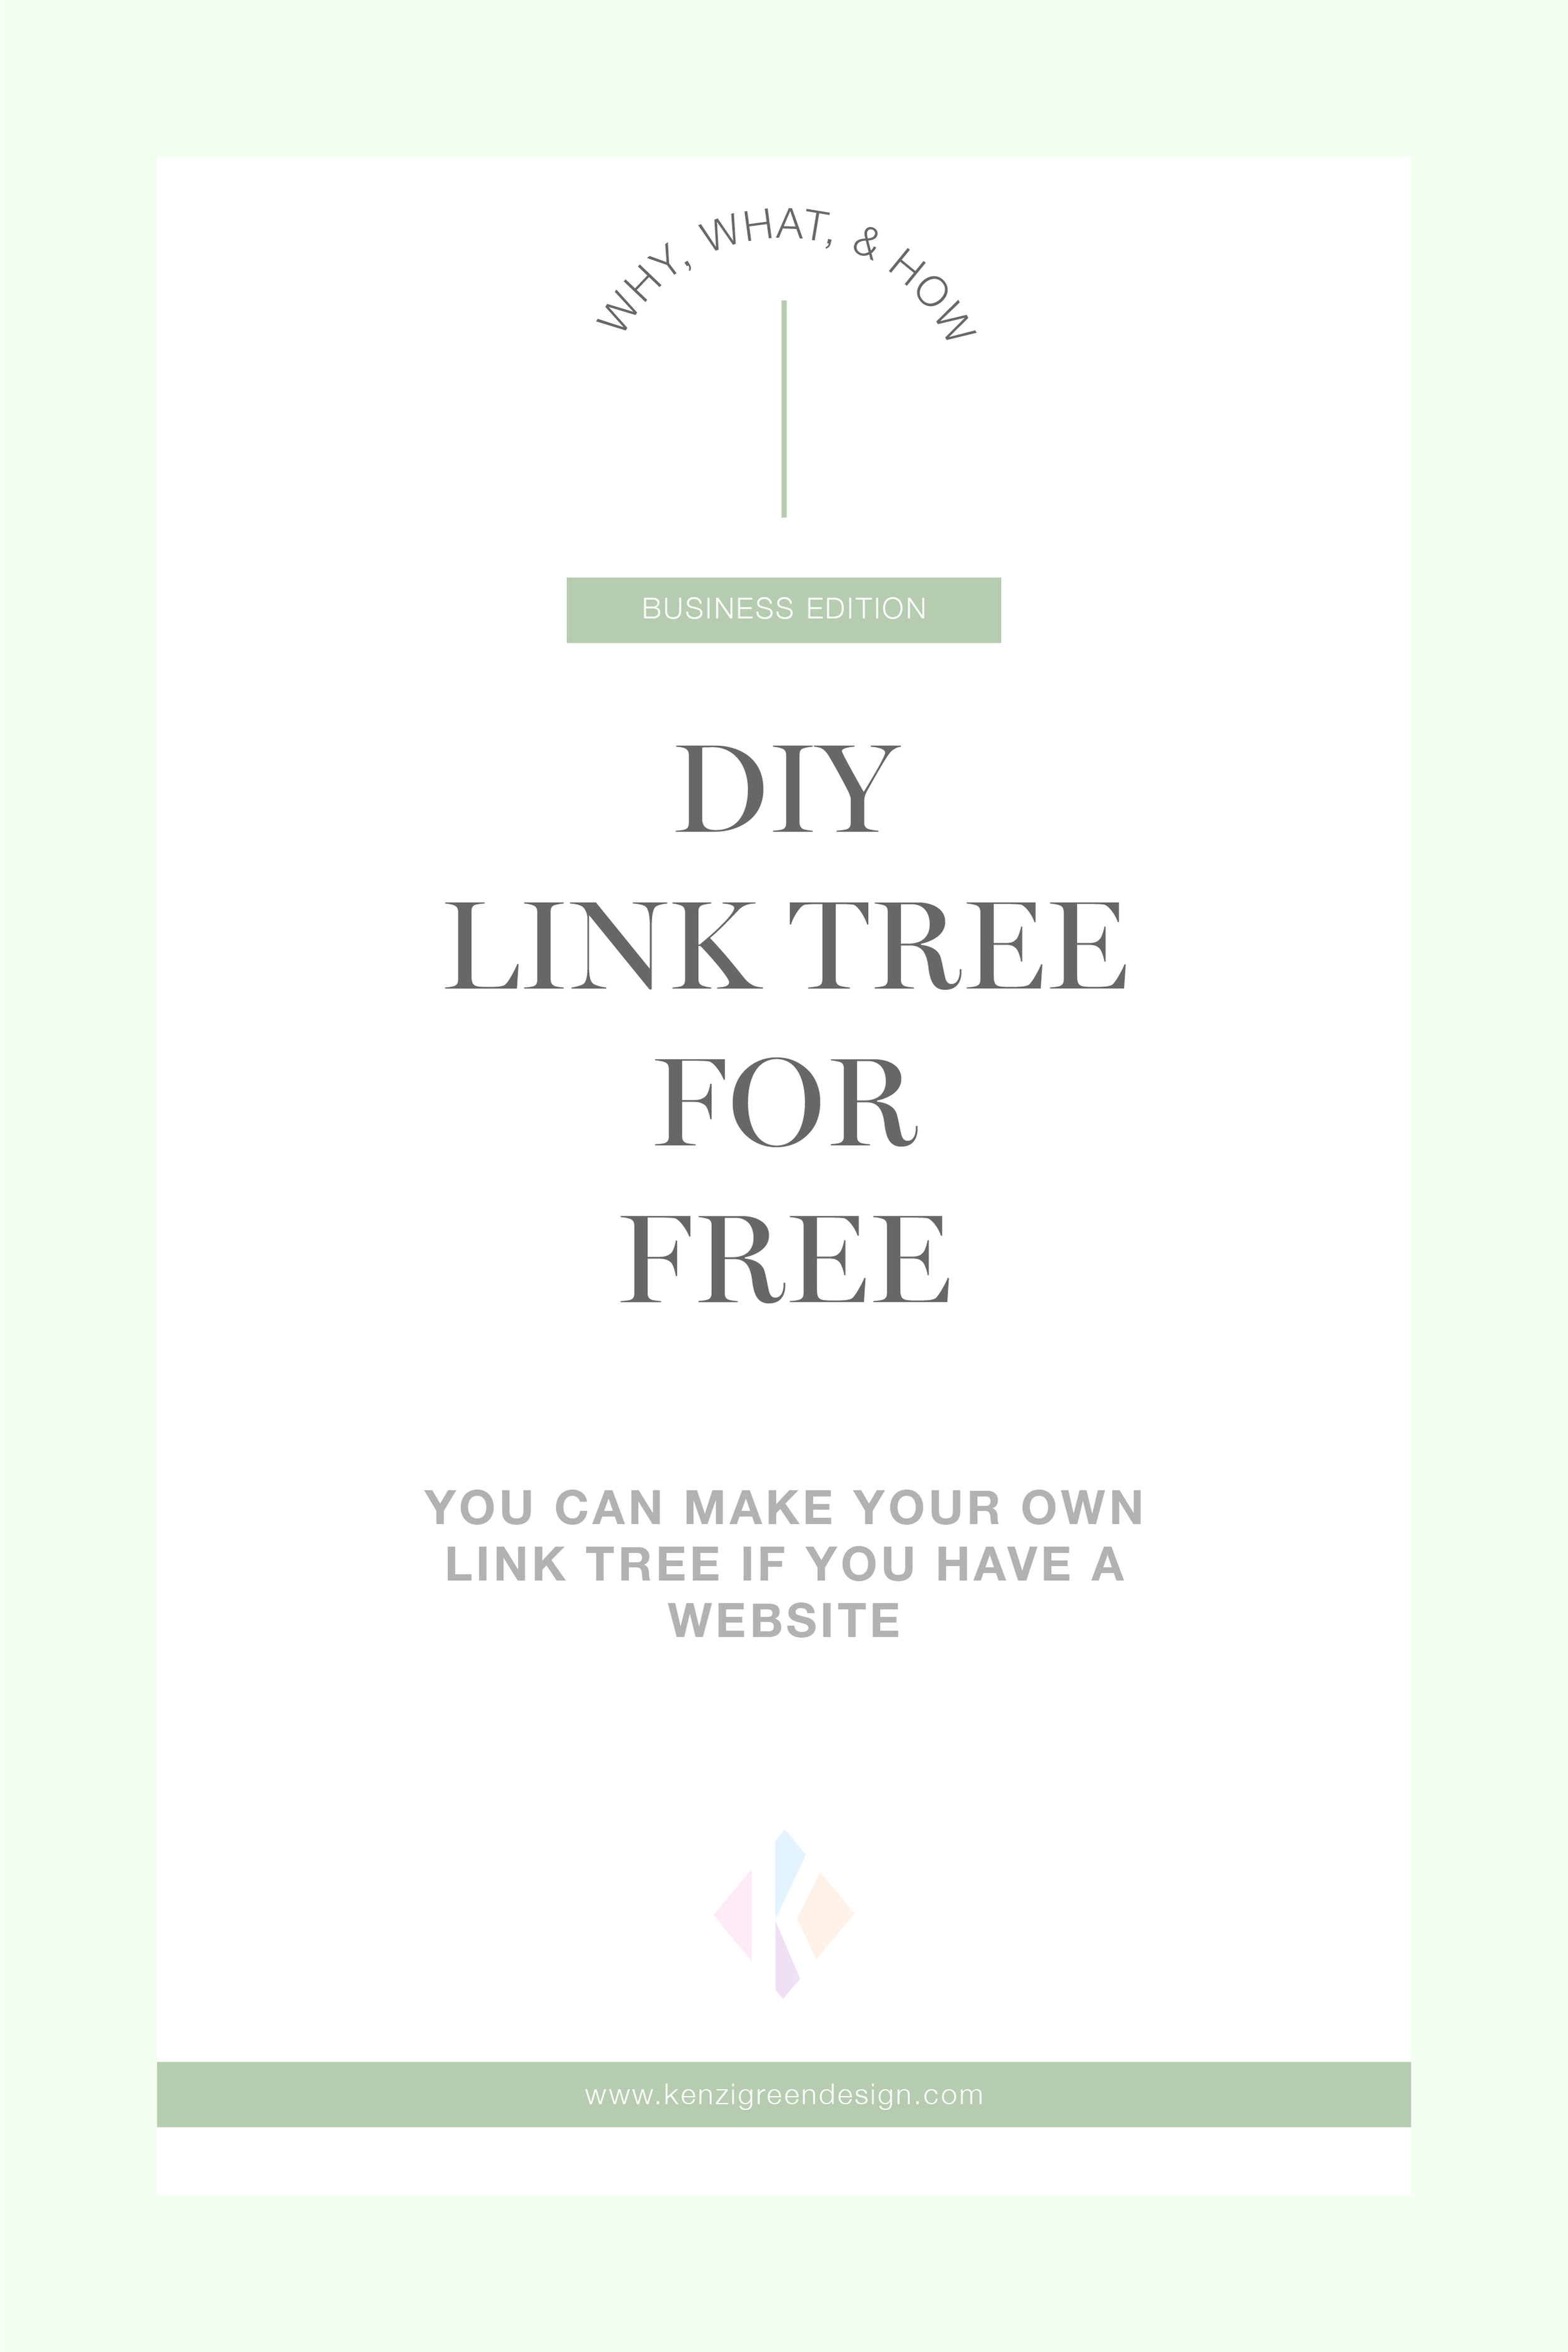 DIY Link Tree For FREE_DIY Link Tree for FREE.jpg